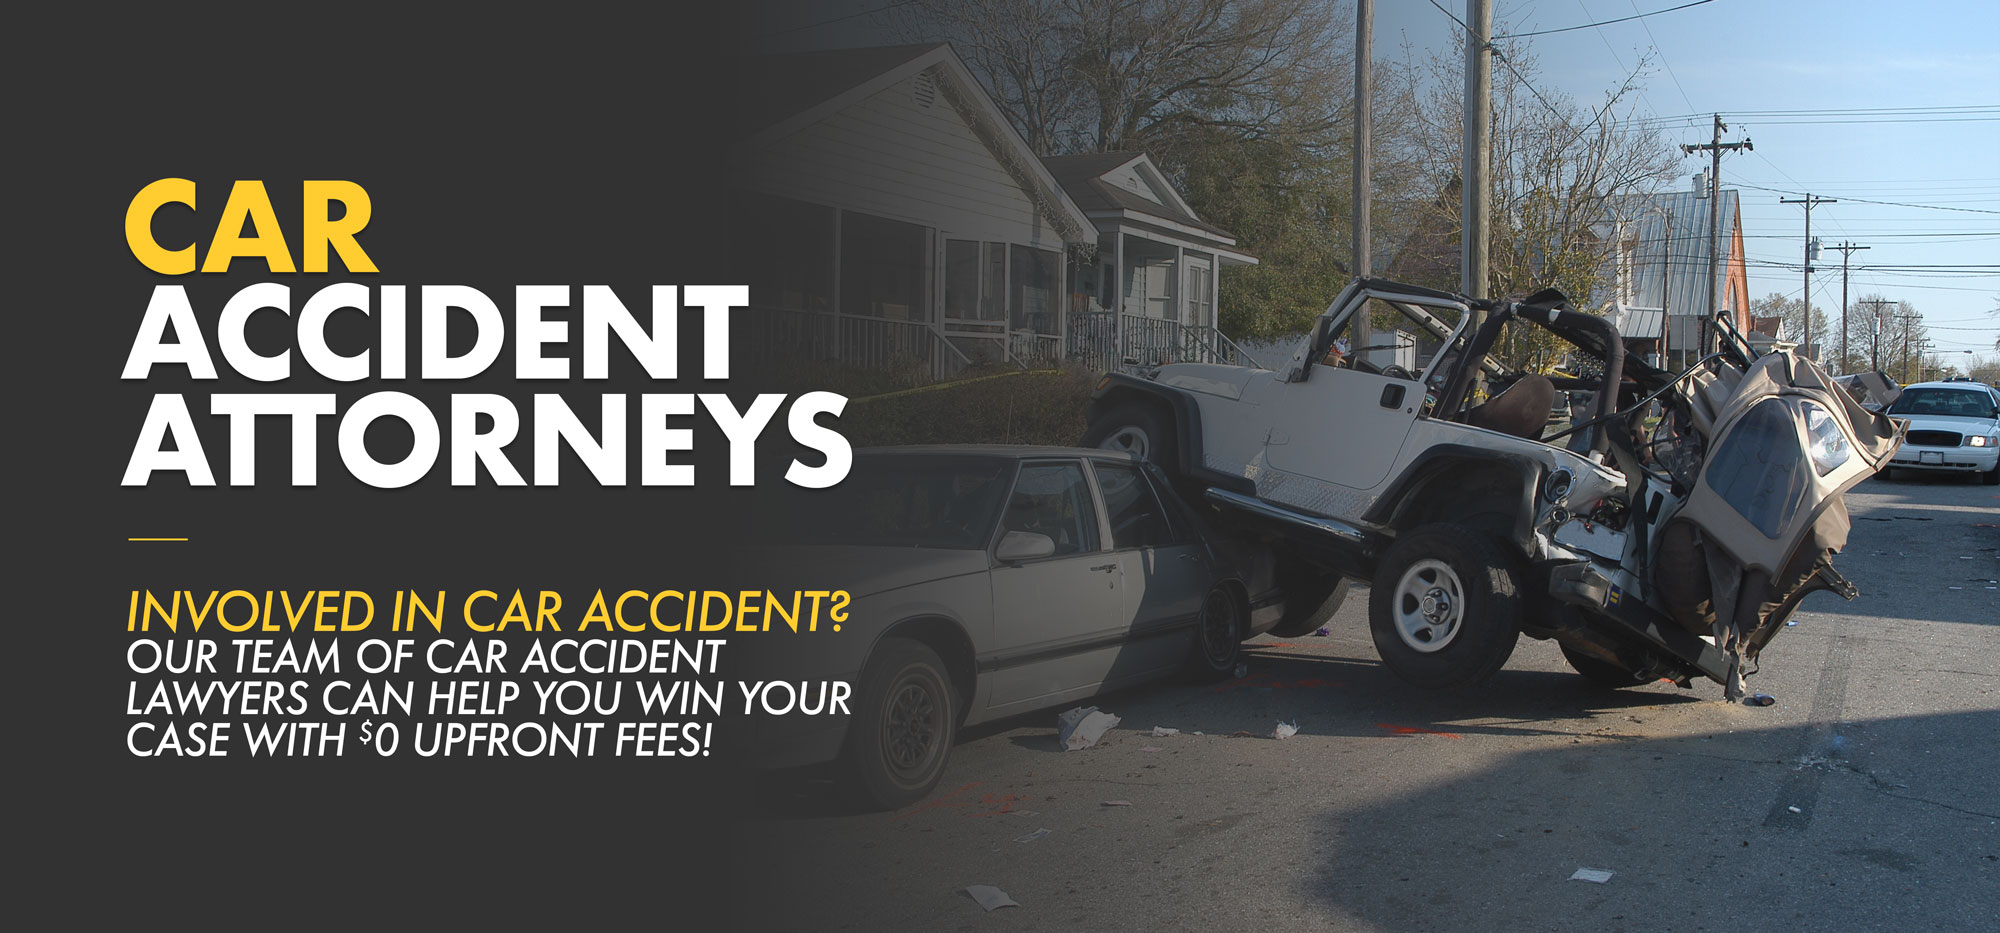 car-accidents-attorney-banner